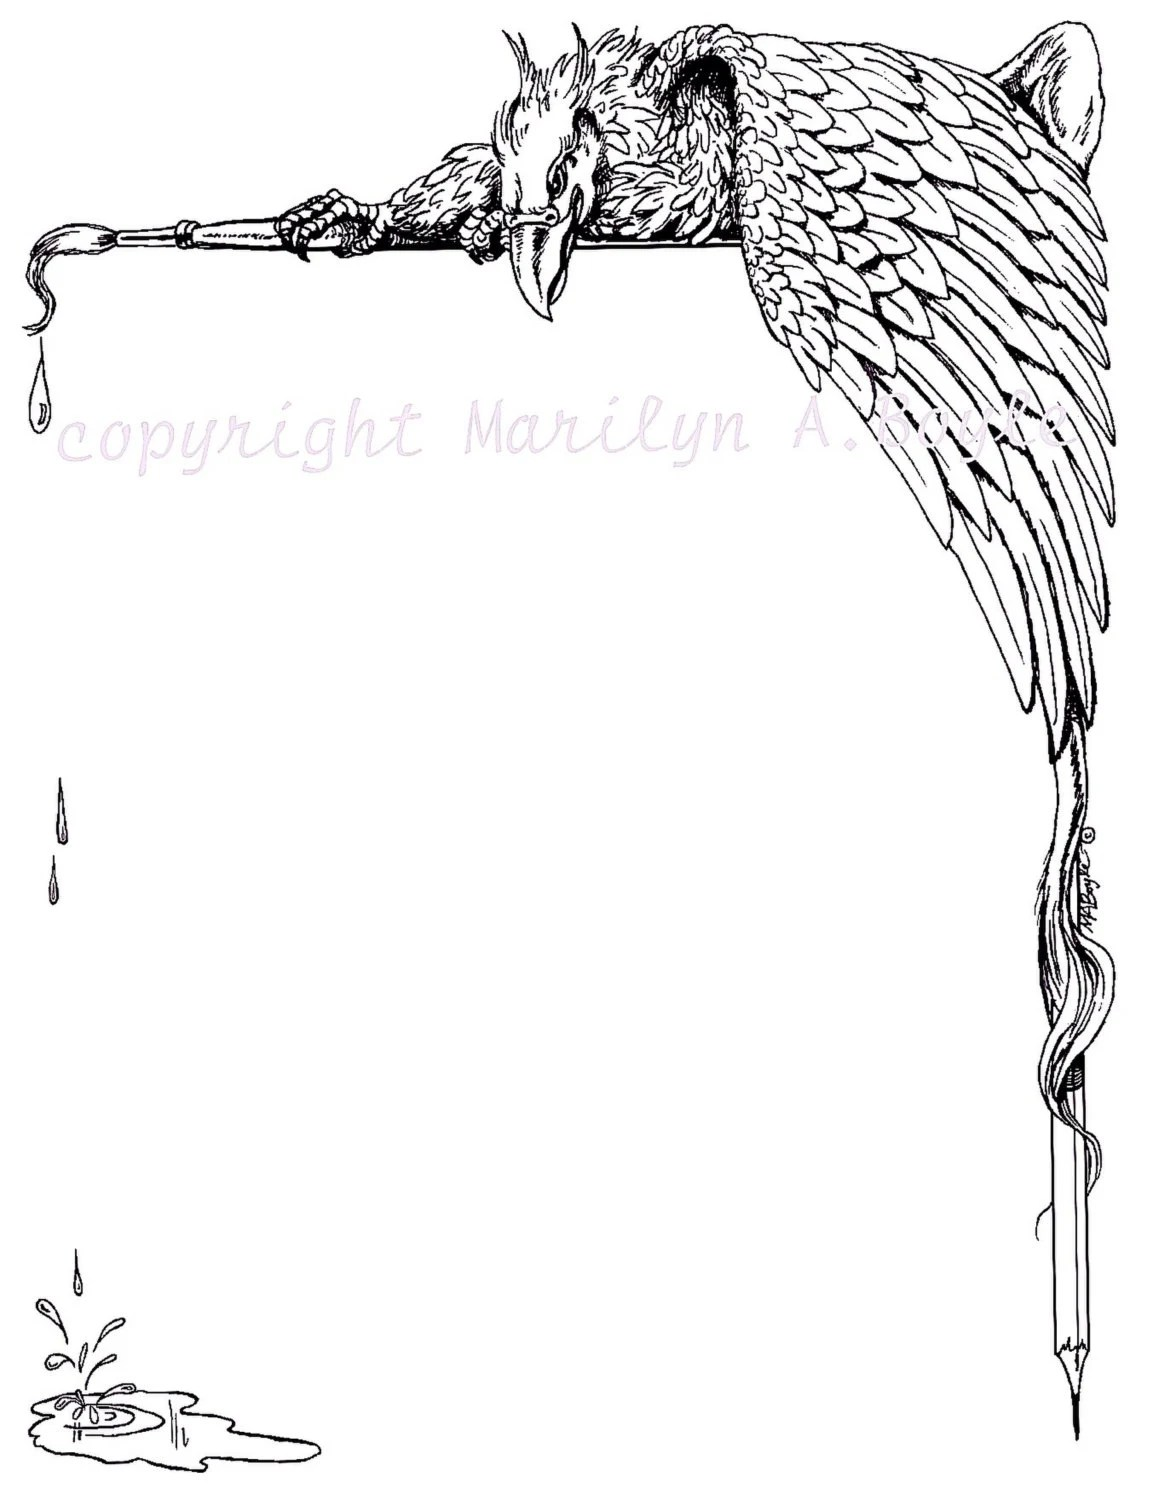 Digital Border Gryphon Fantasy Pen And Ink From An